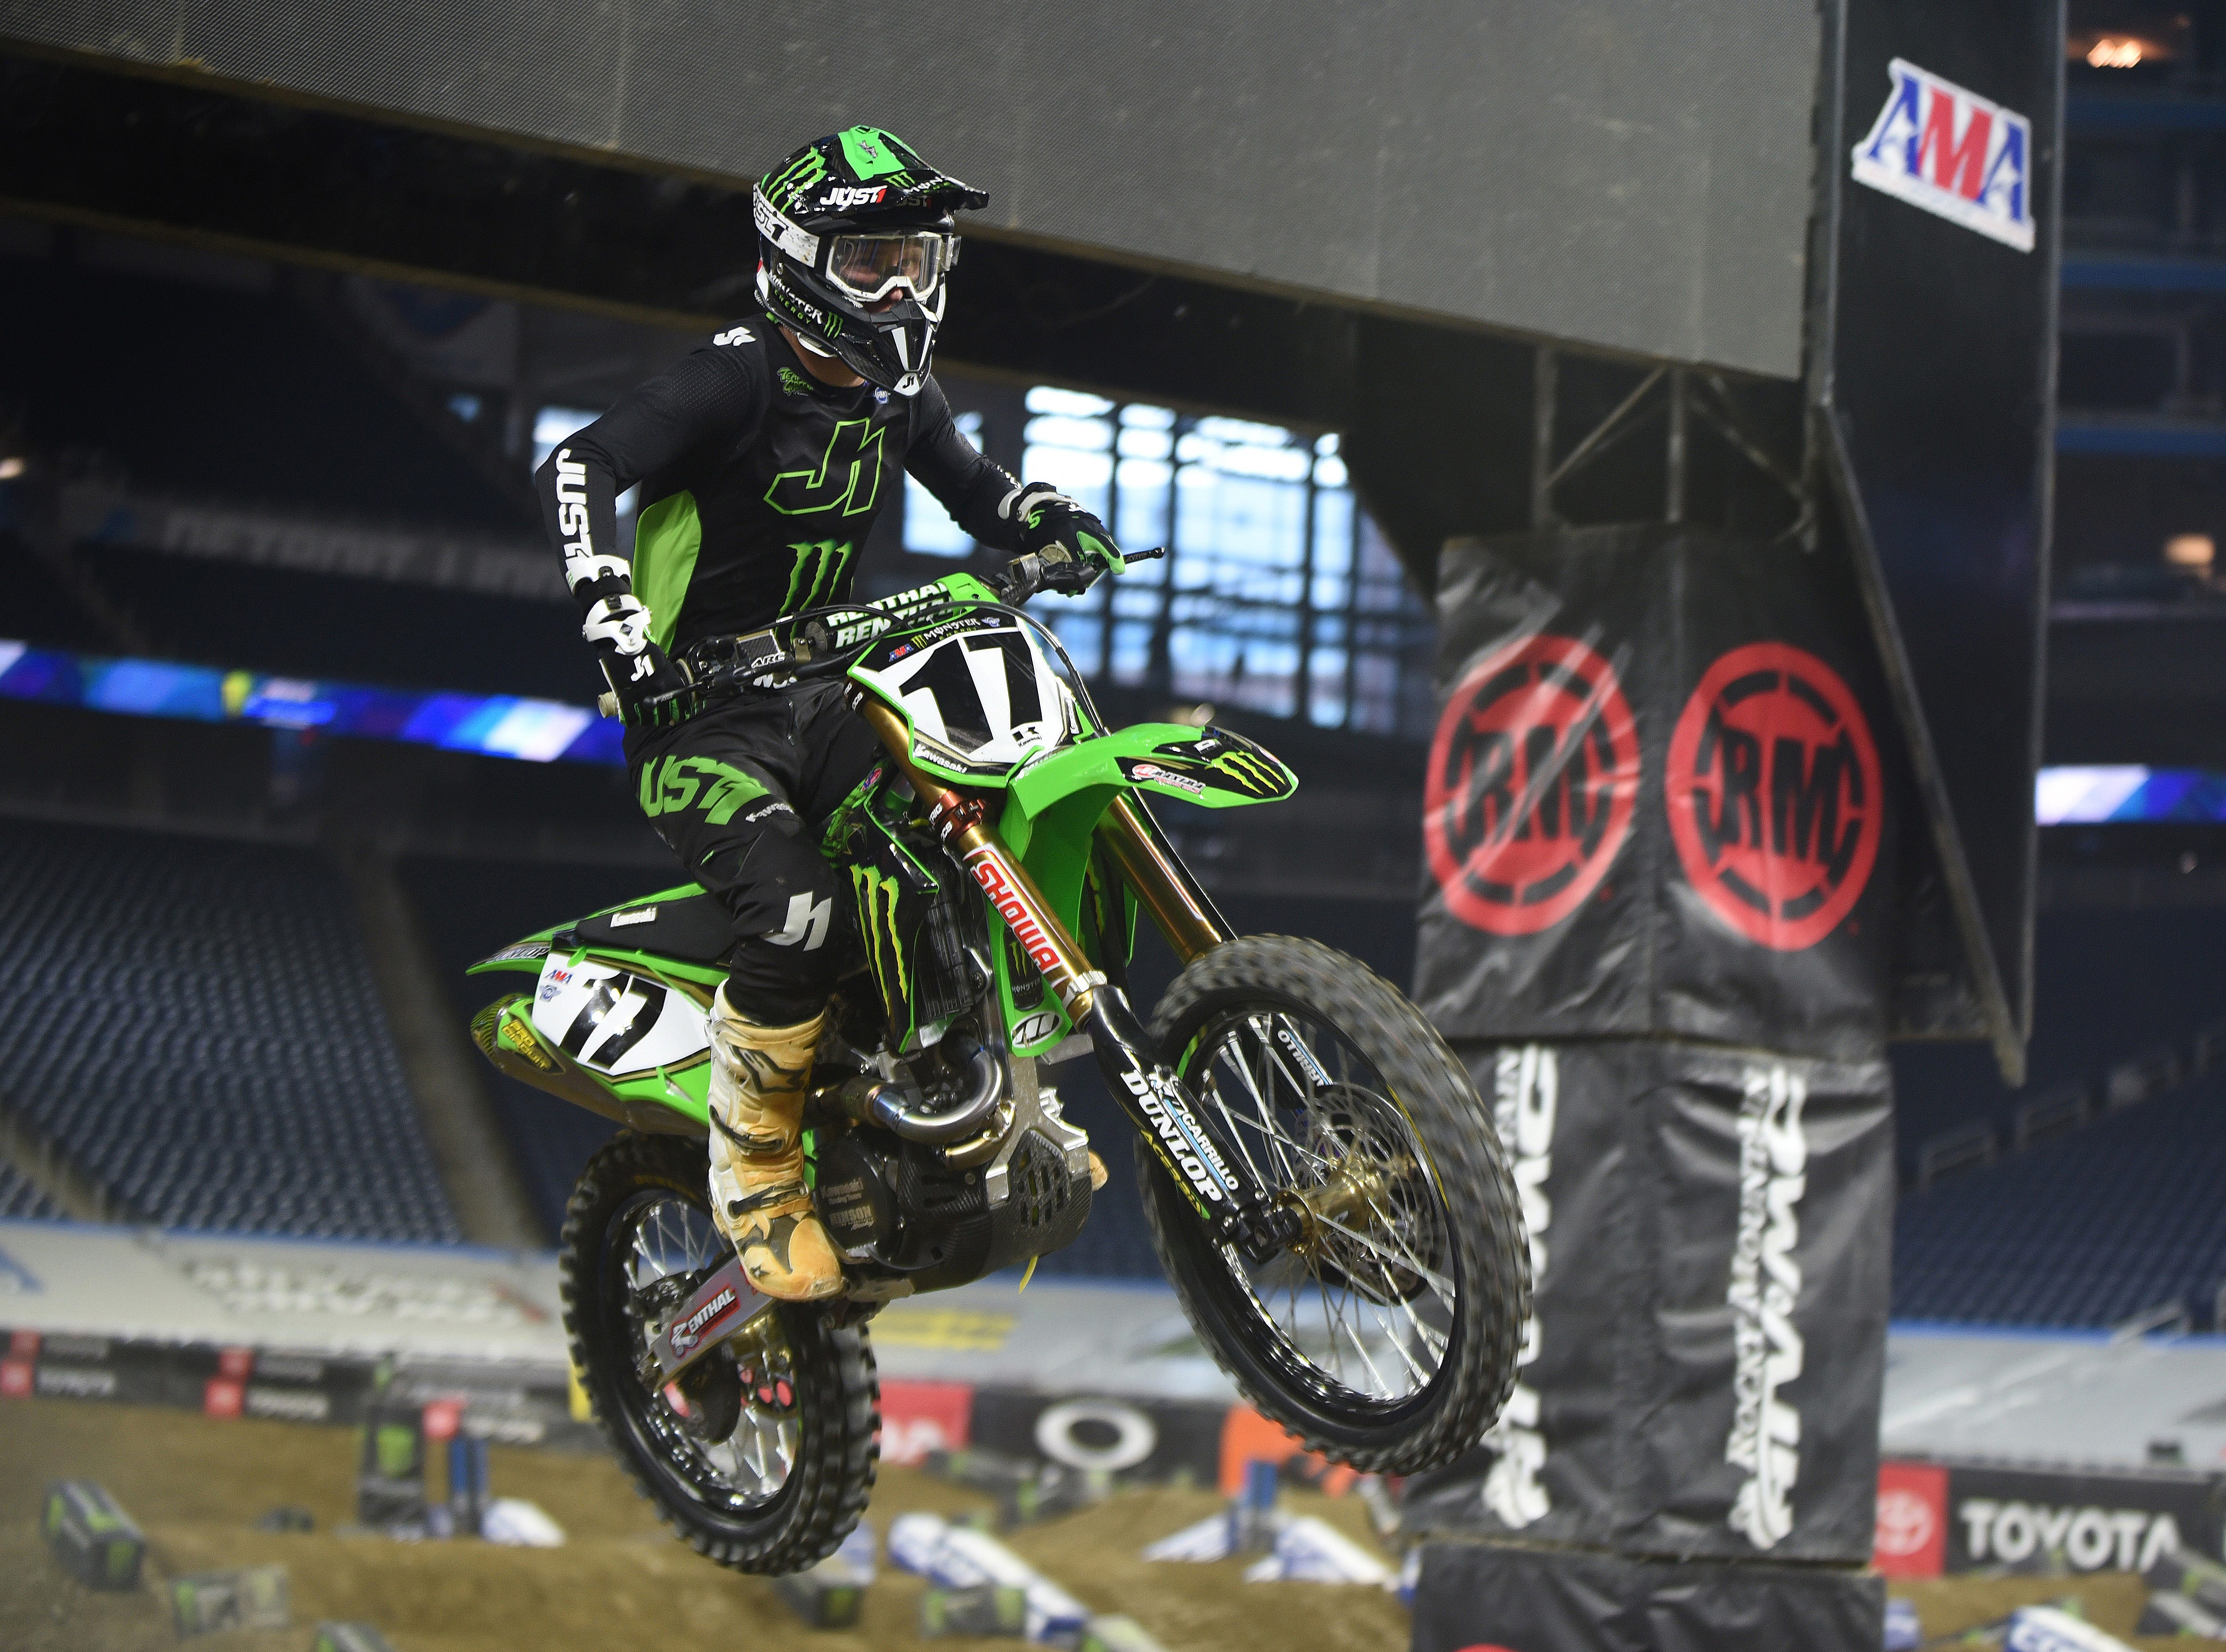 Supercross superstar Joey Savatgy (17) catches some air during a practice run for the 2019 Monster Energy Supercross at Ford Field in Detroit on Friday, February 22, 2019.